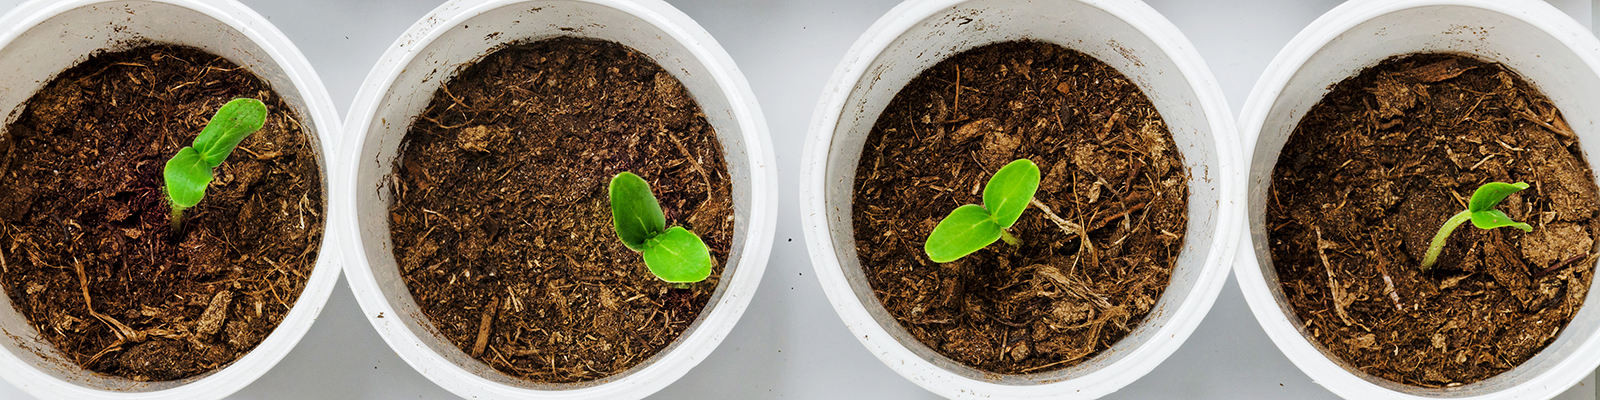 Young green plant seedlings.